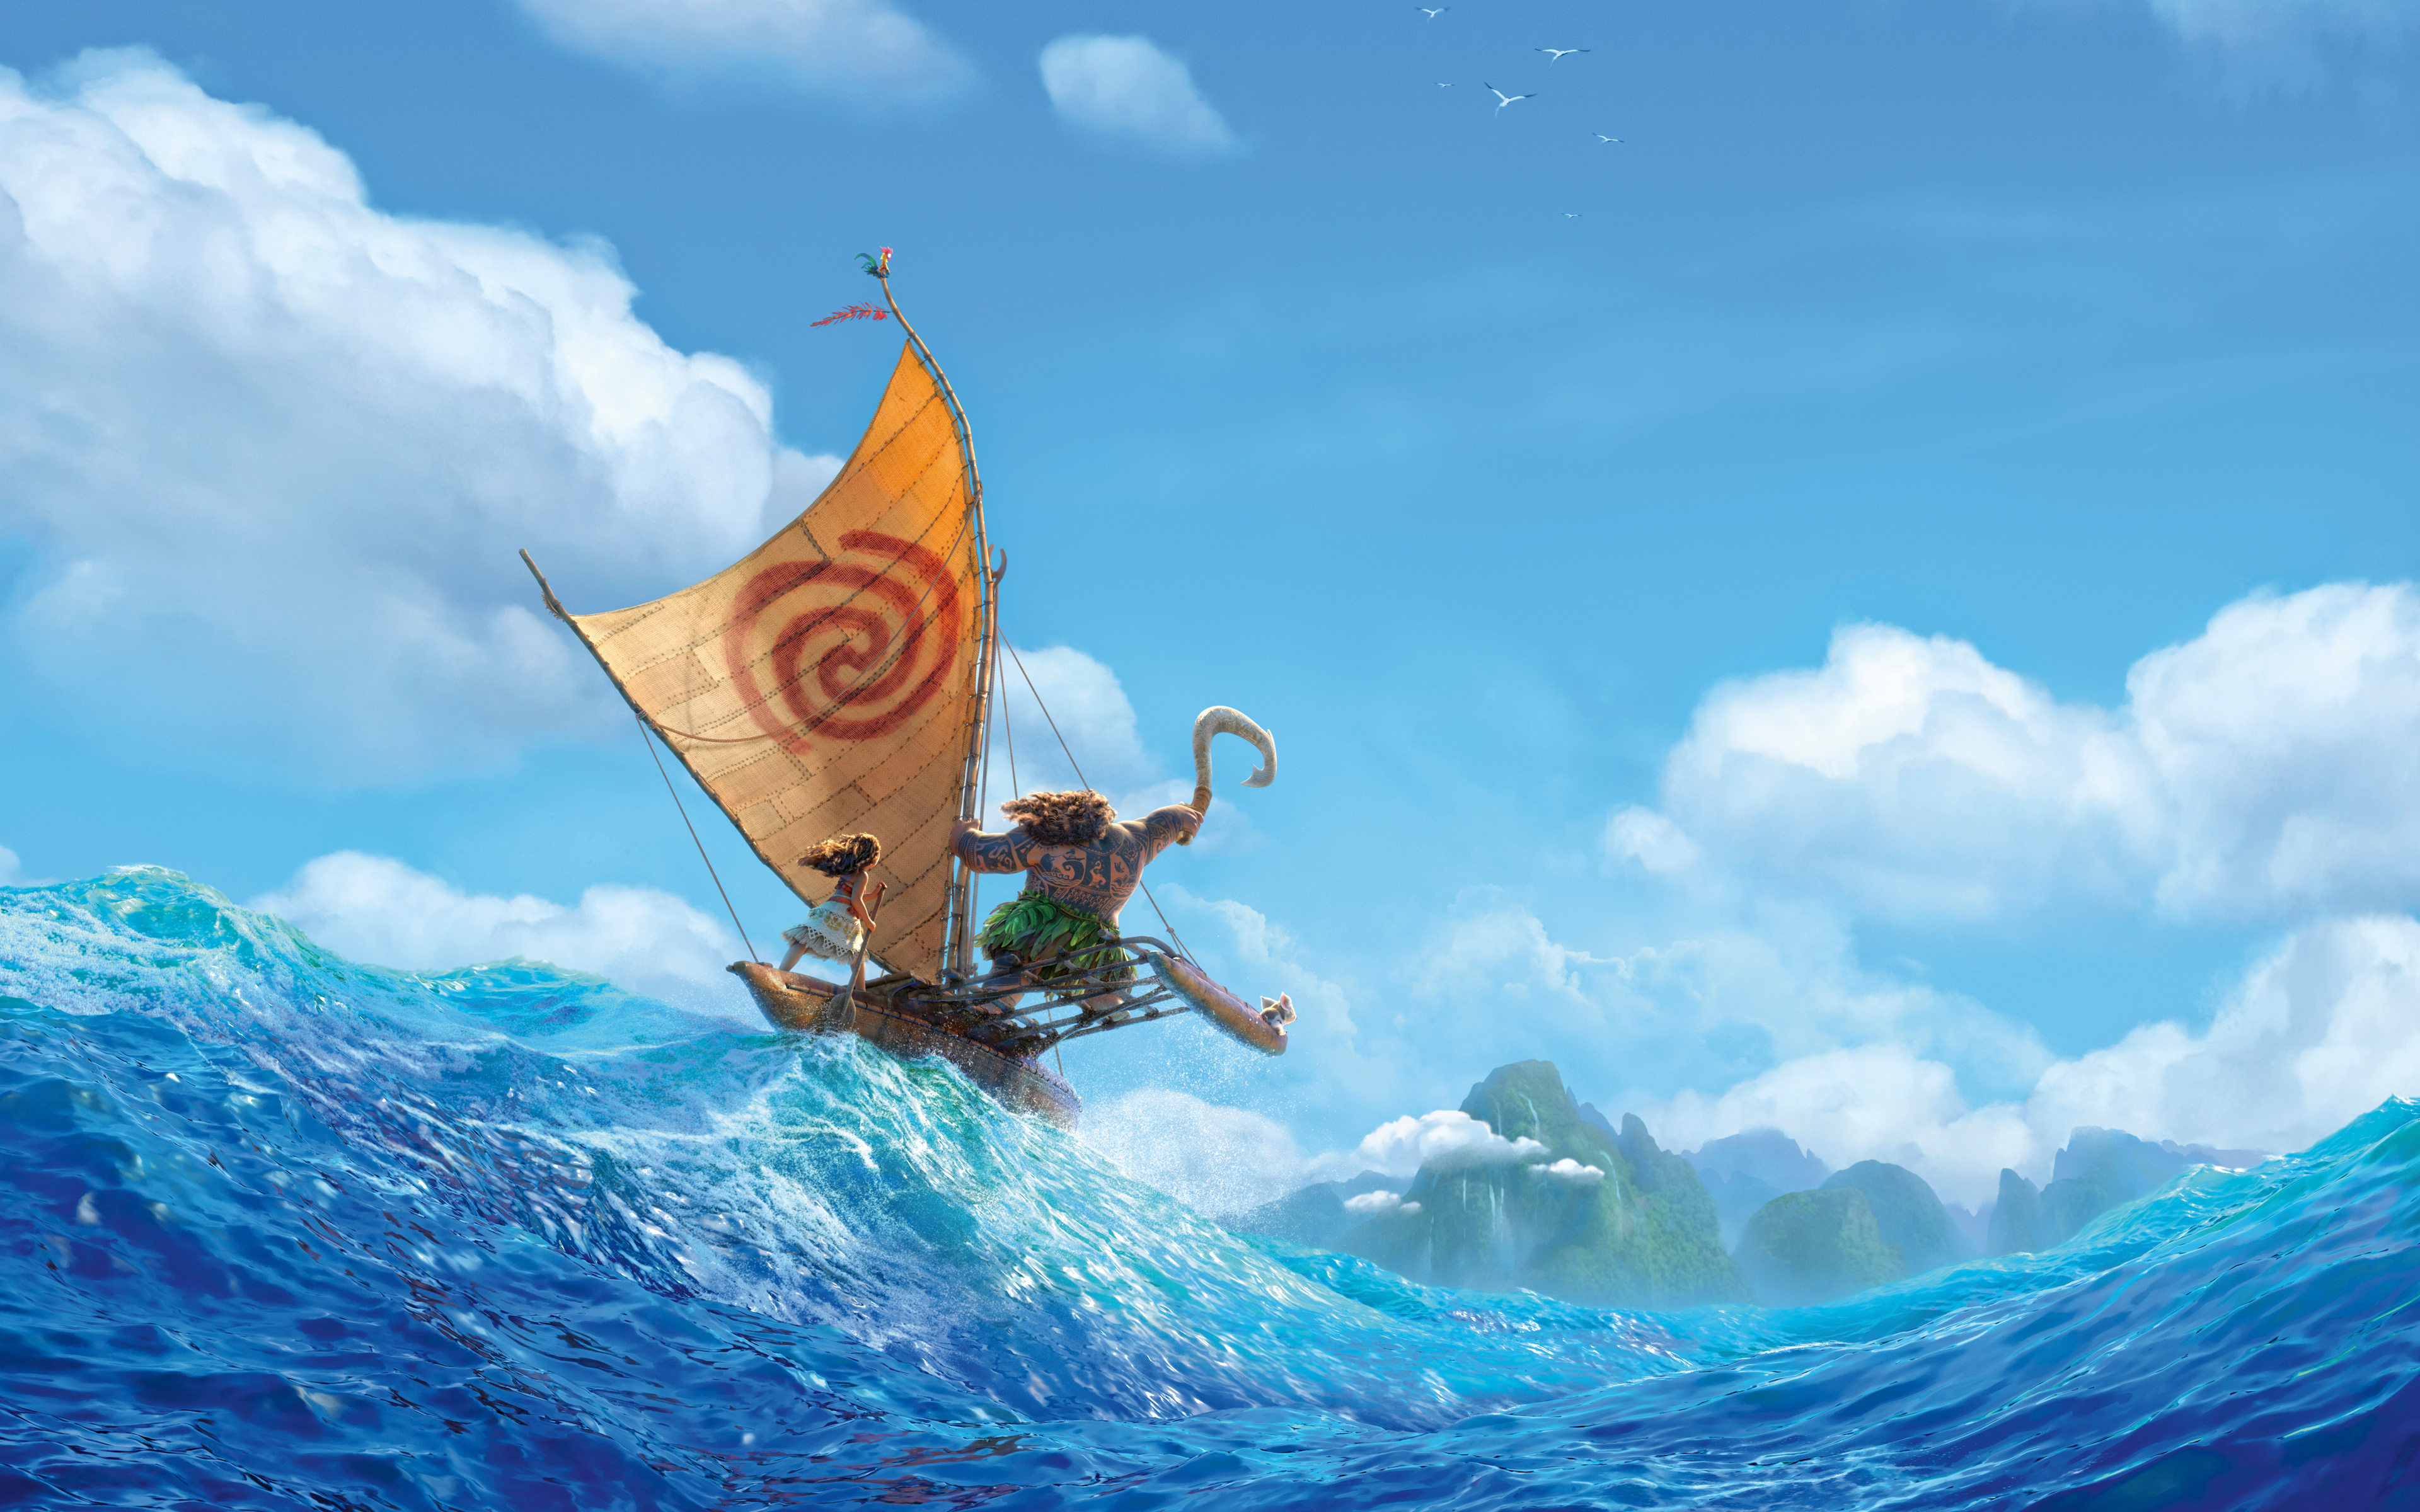 2880x1800 Disney Moana Macbook Pro Retina Hd 4k Wallpapers Images Backgrounds Photos And Pictures